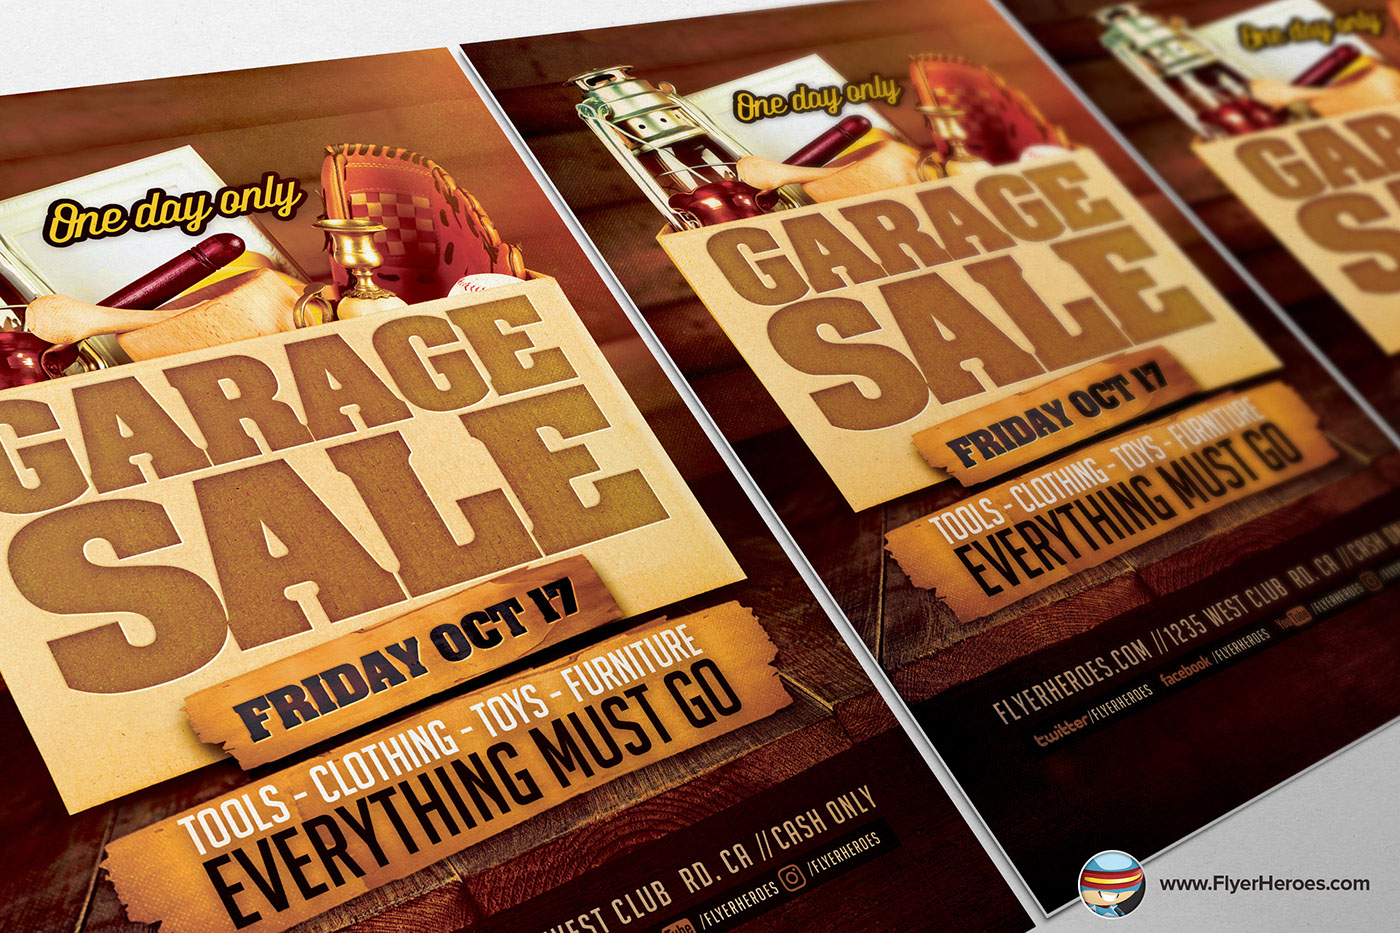 garage flyer template on behance garage flyer template is a premium photoshop psd flyer poster template designed by flyerheroes to be used photoshop cs4 and higher